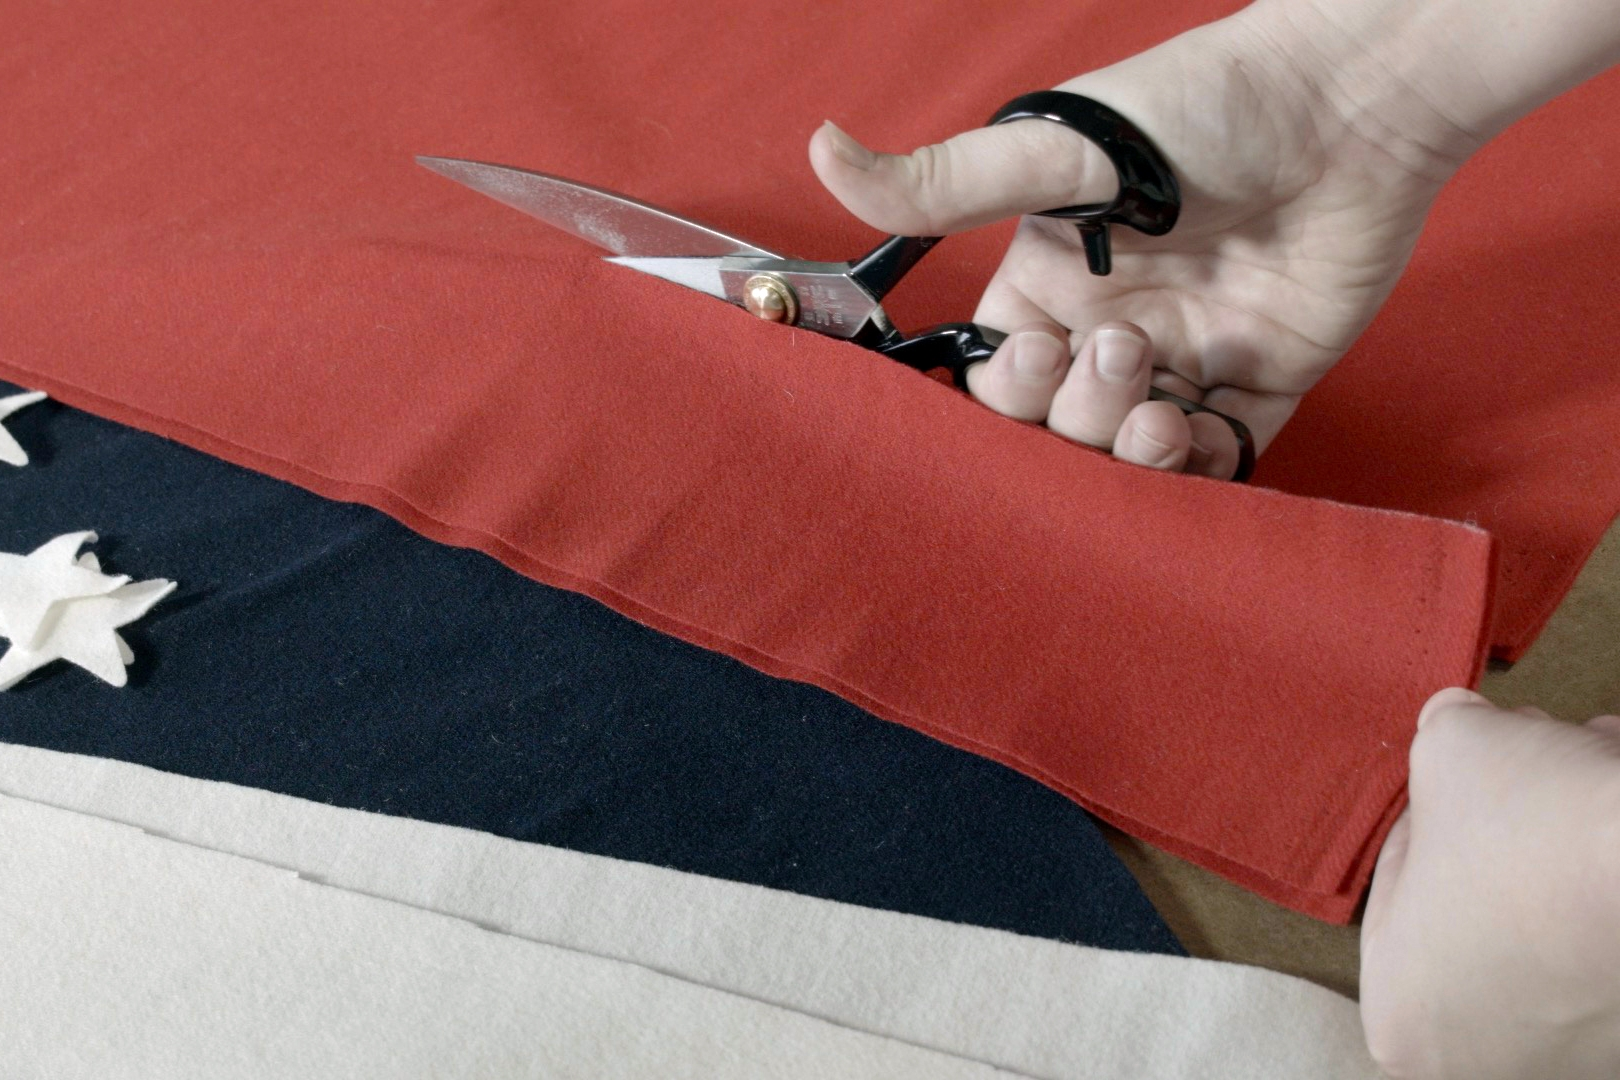 We practice what we preach and truly understand what made in America really means. We're making American flags after all!